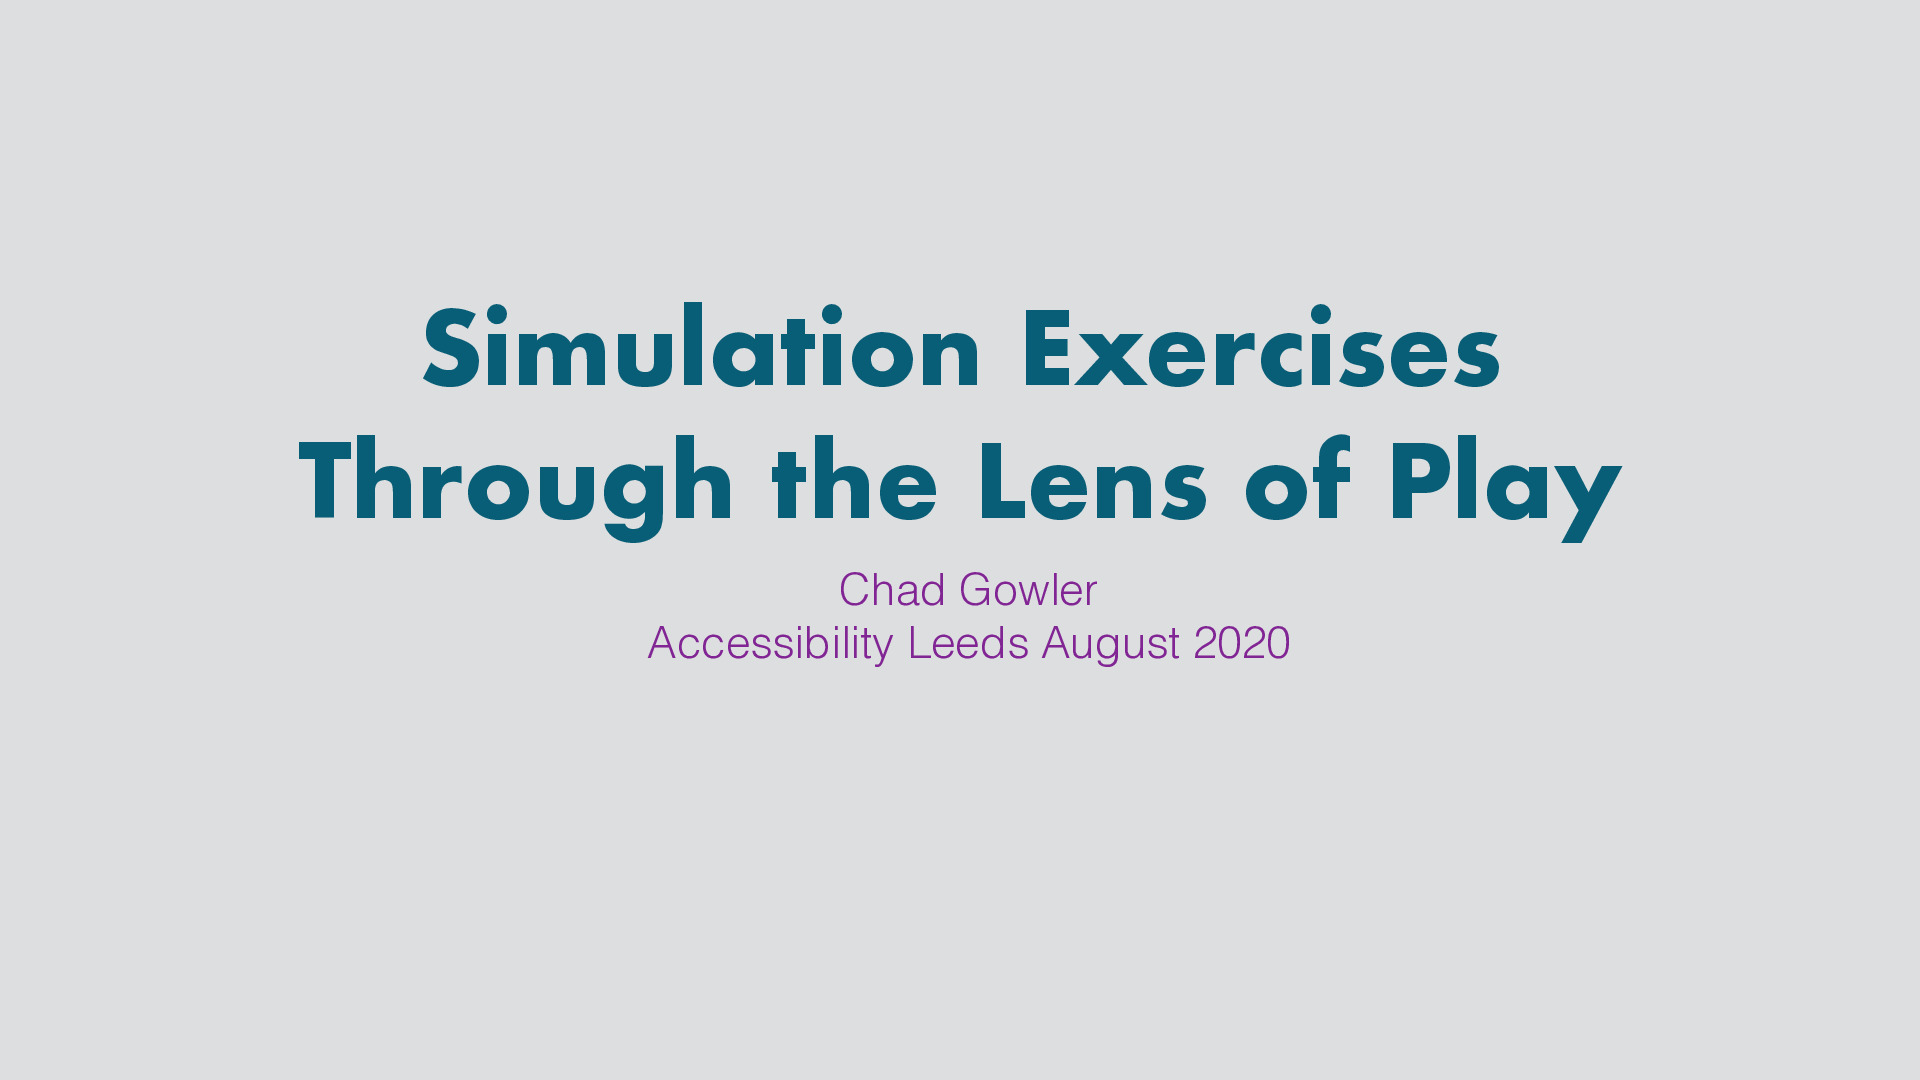 Simulation exercises through the lens of play